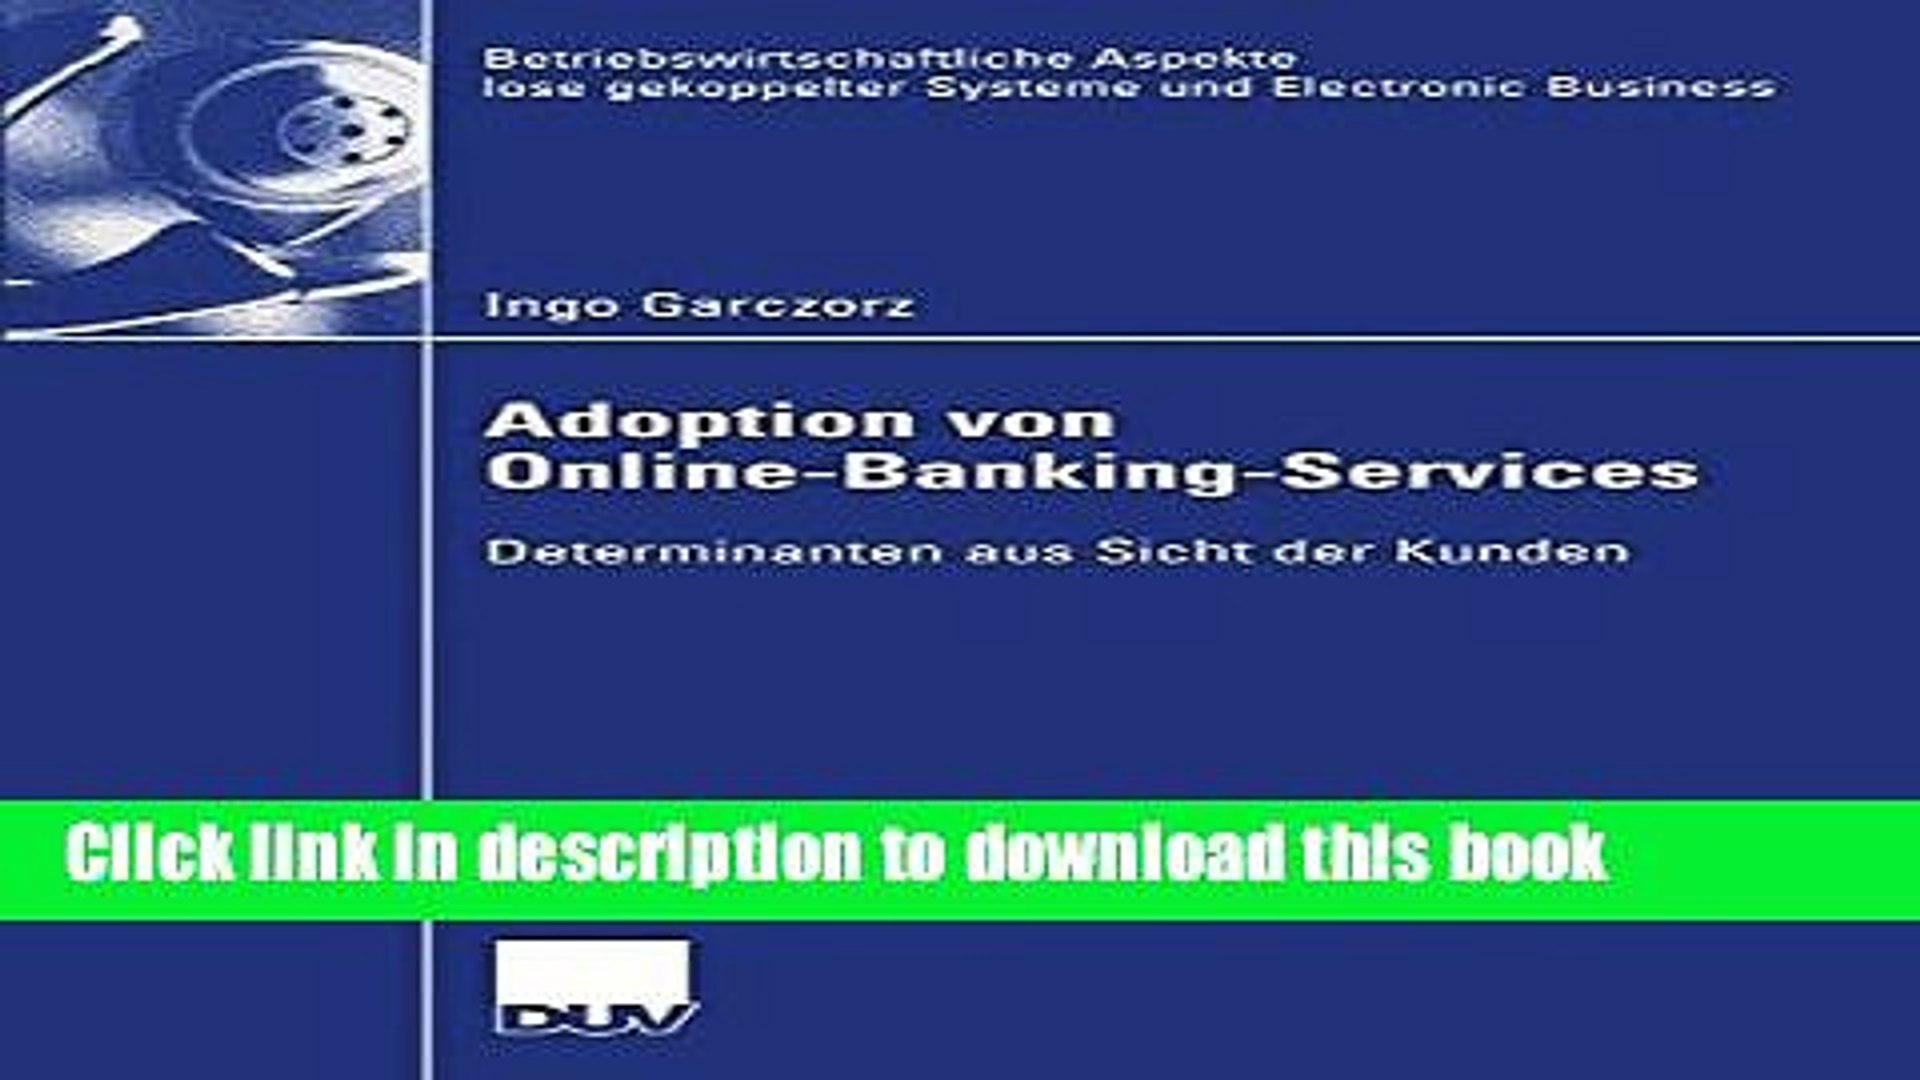 [Read  e-Book PDF] Adoption von Online-Banking-Services: Determinanten aus Sicht der Kunden